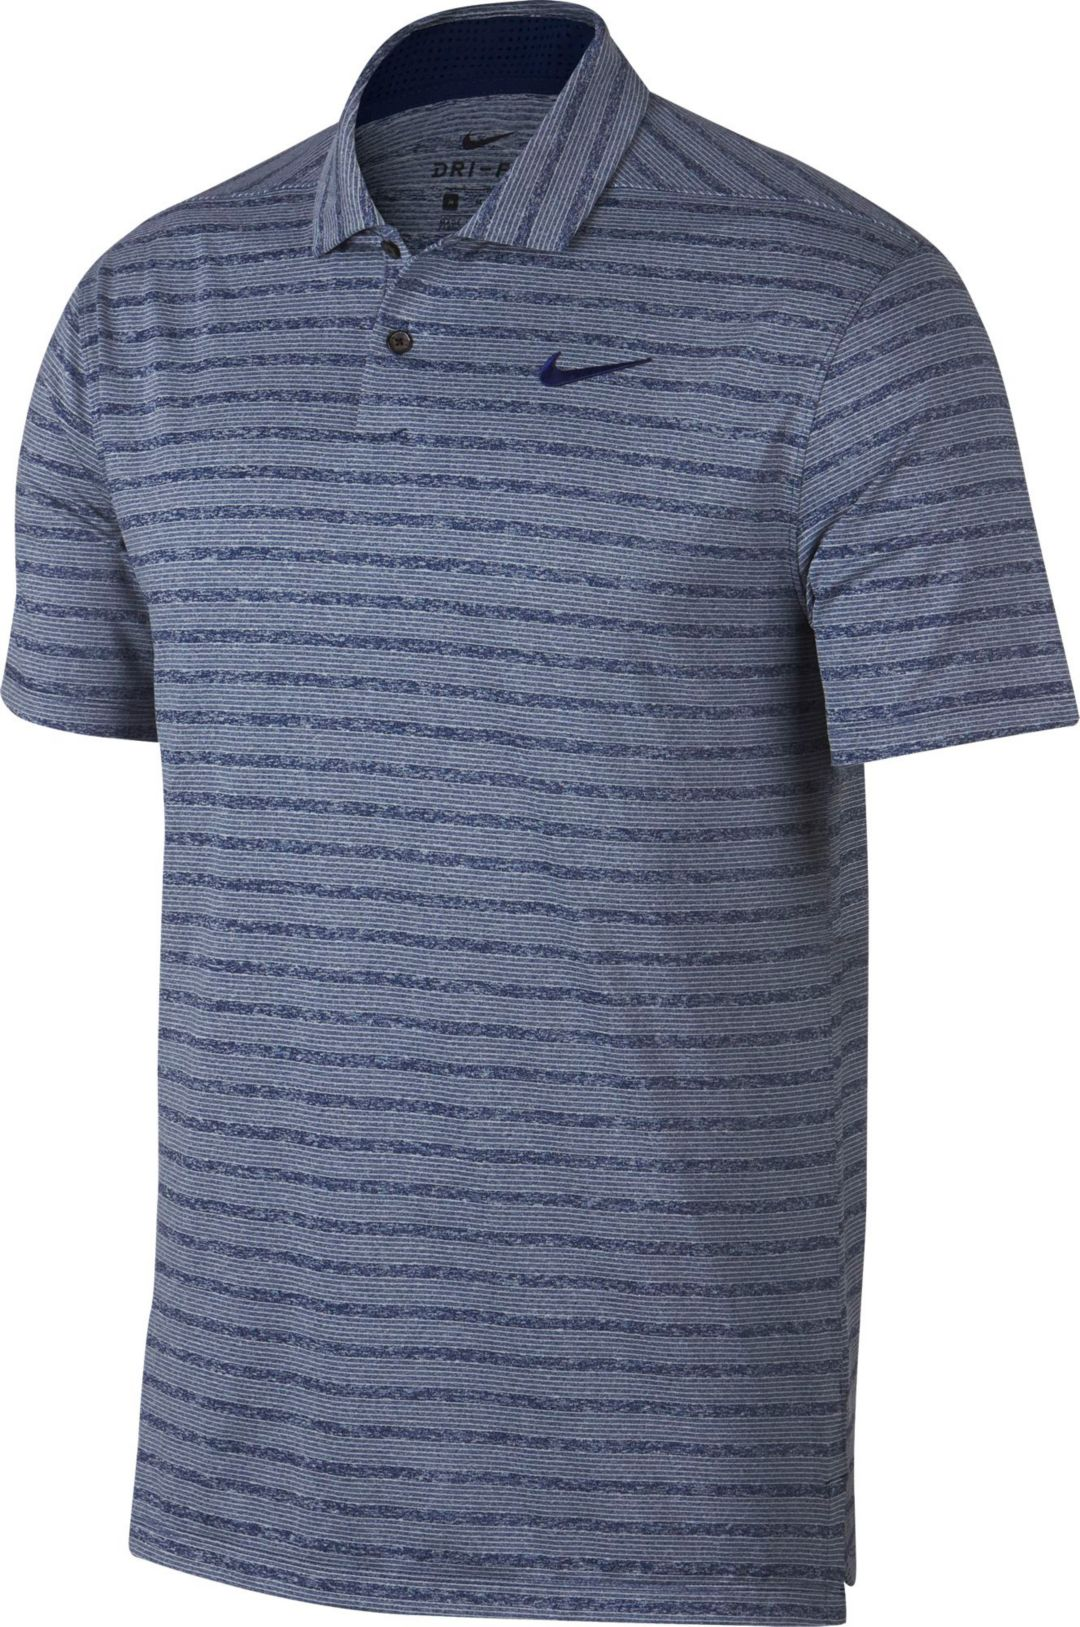 cb5439e0b5765 Nike Men's Vapor Stripe Golf Polo | DICK'S Sporting Goods